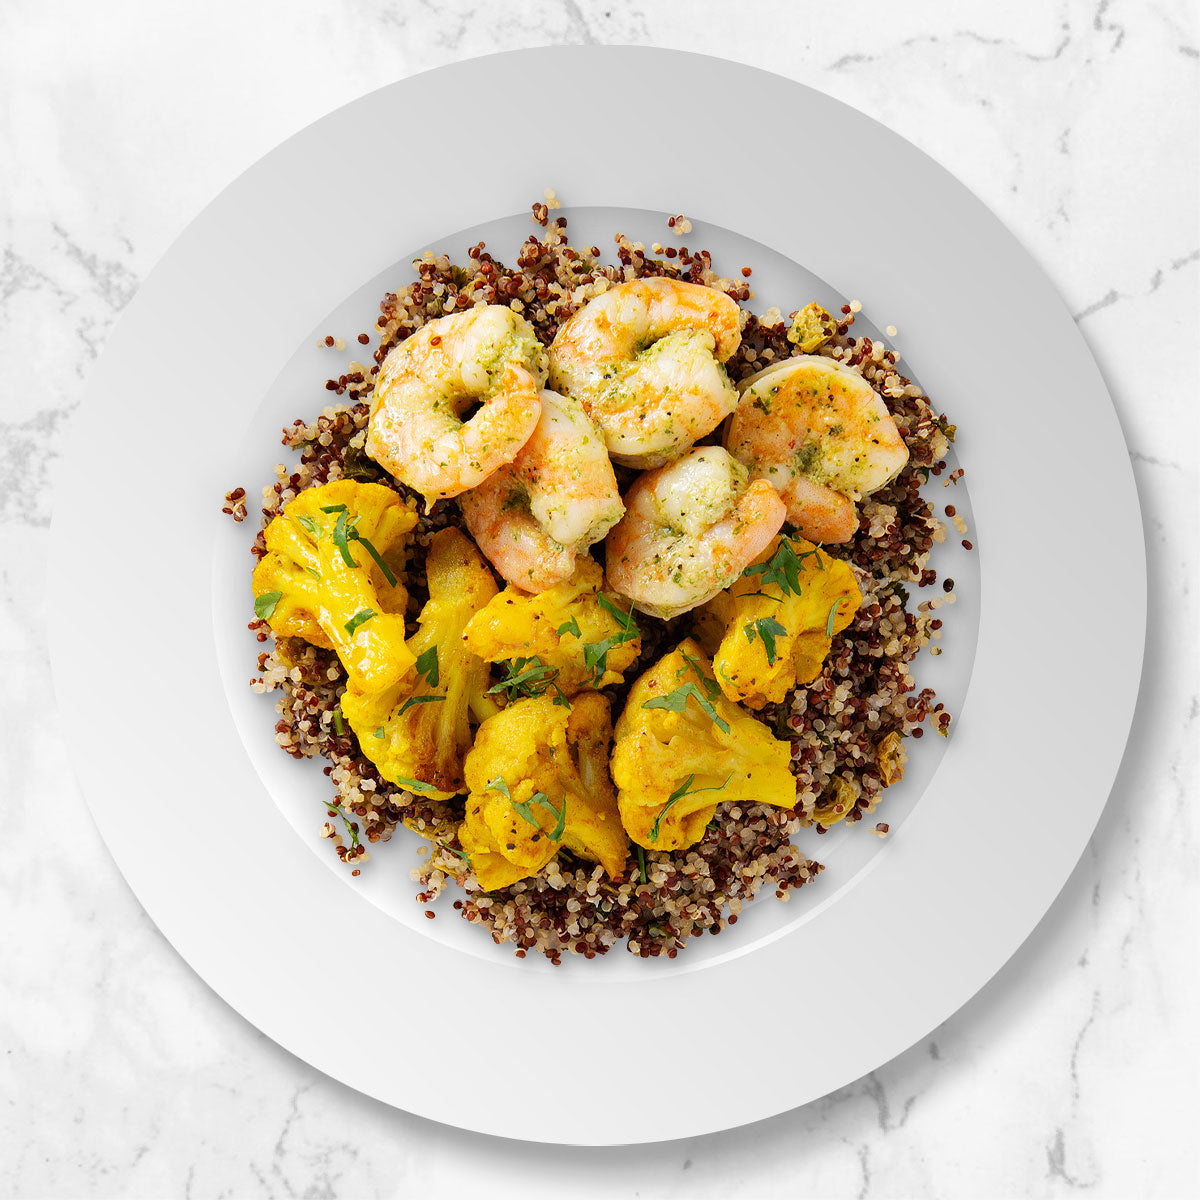 Citrus Shrimp with Quinoa and Spiced Cauliflower